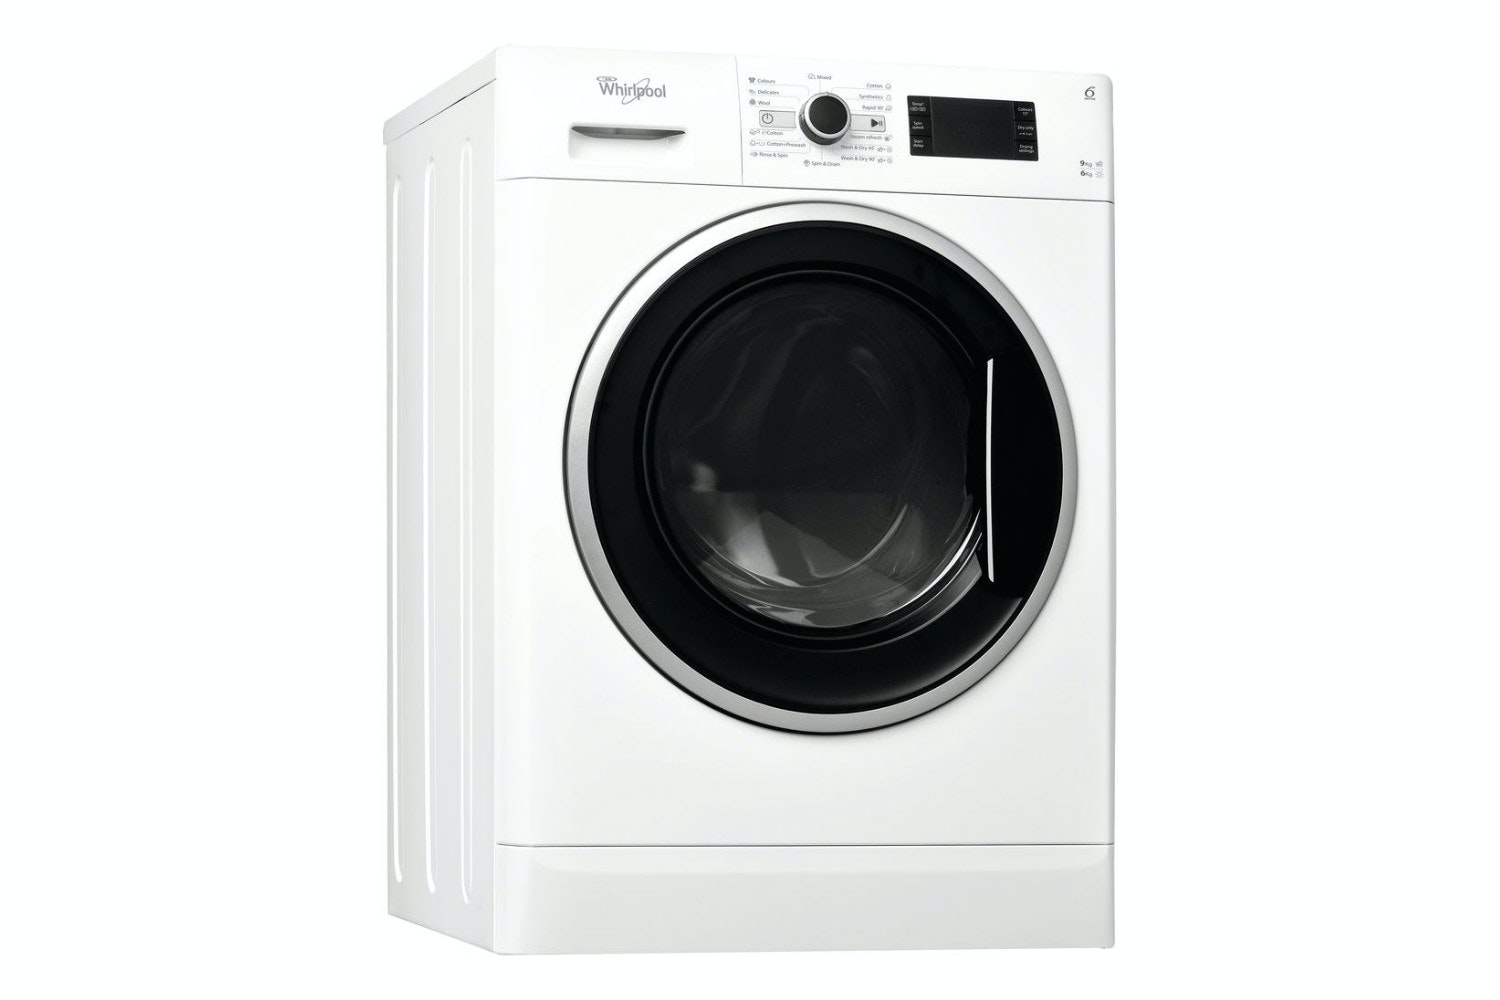 Whirlpool 9kg Freestanding Washer / 6kg Dryer | WWDC9614